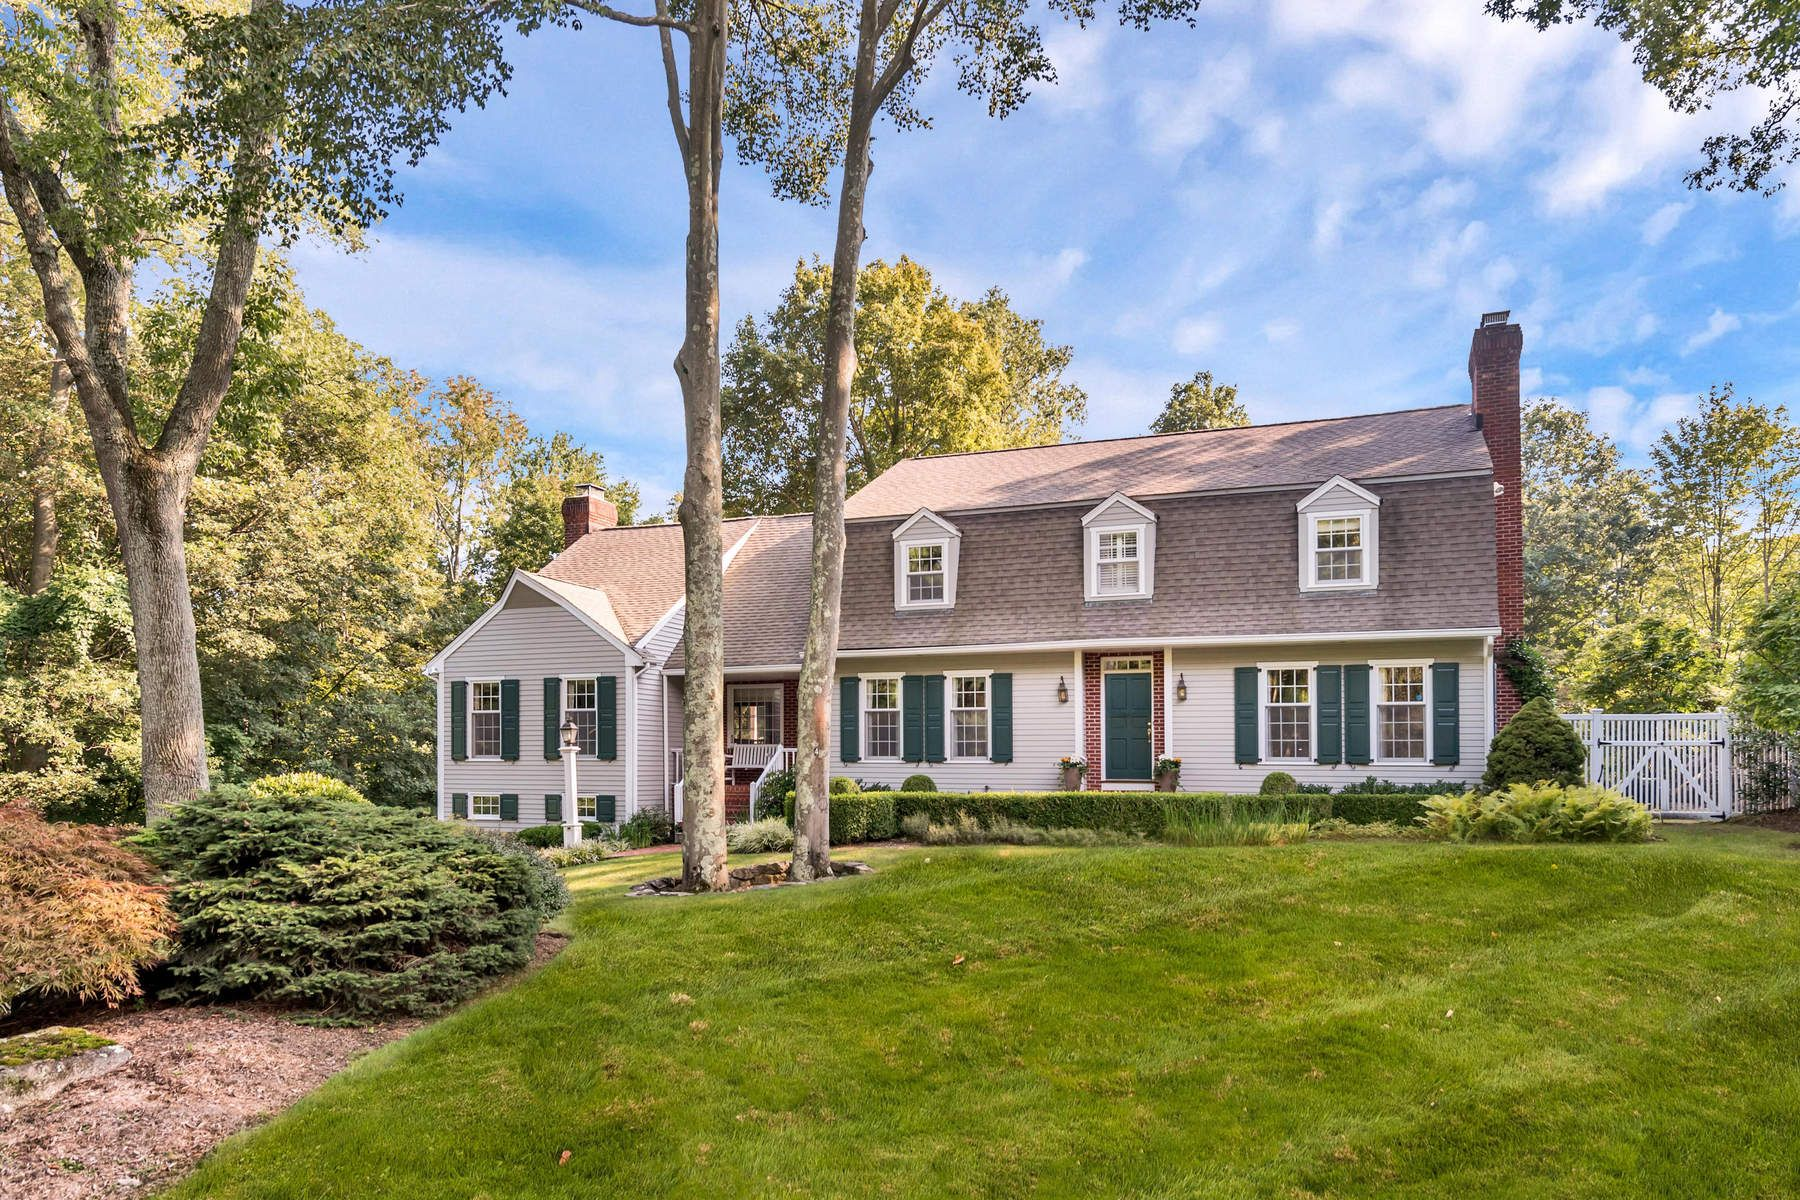 Maison unifamiliale pour l Vente à 4 Arrowhead Lane 4 Arrowhead Lane Cos Cob, Connecticut 06807 États-Unis